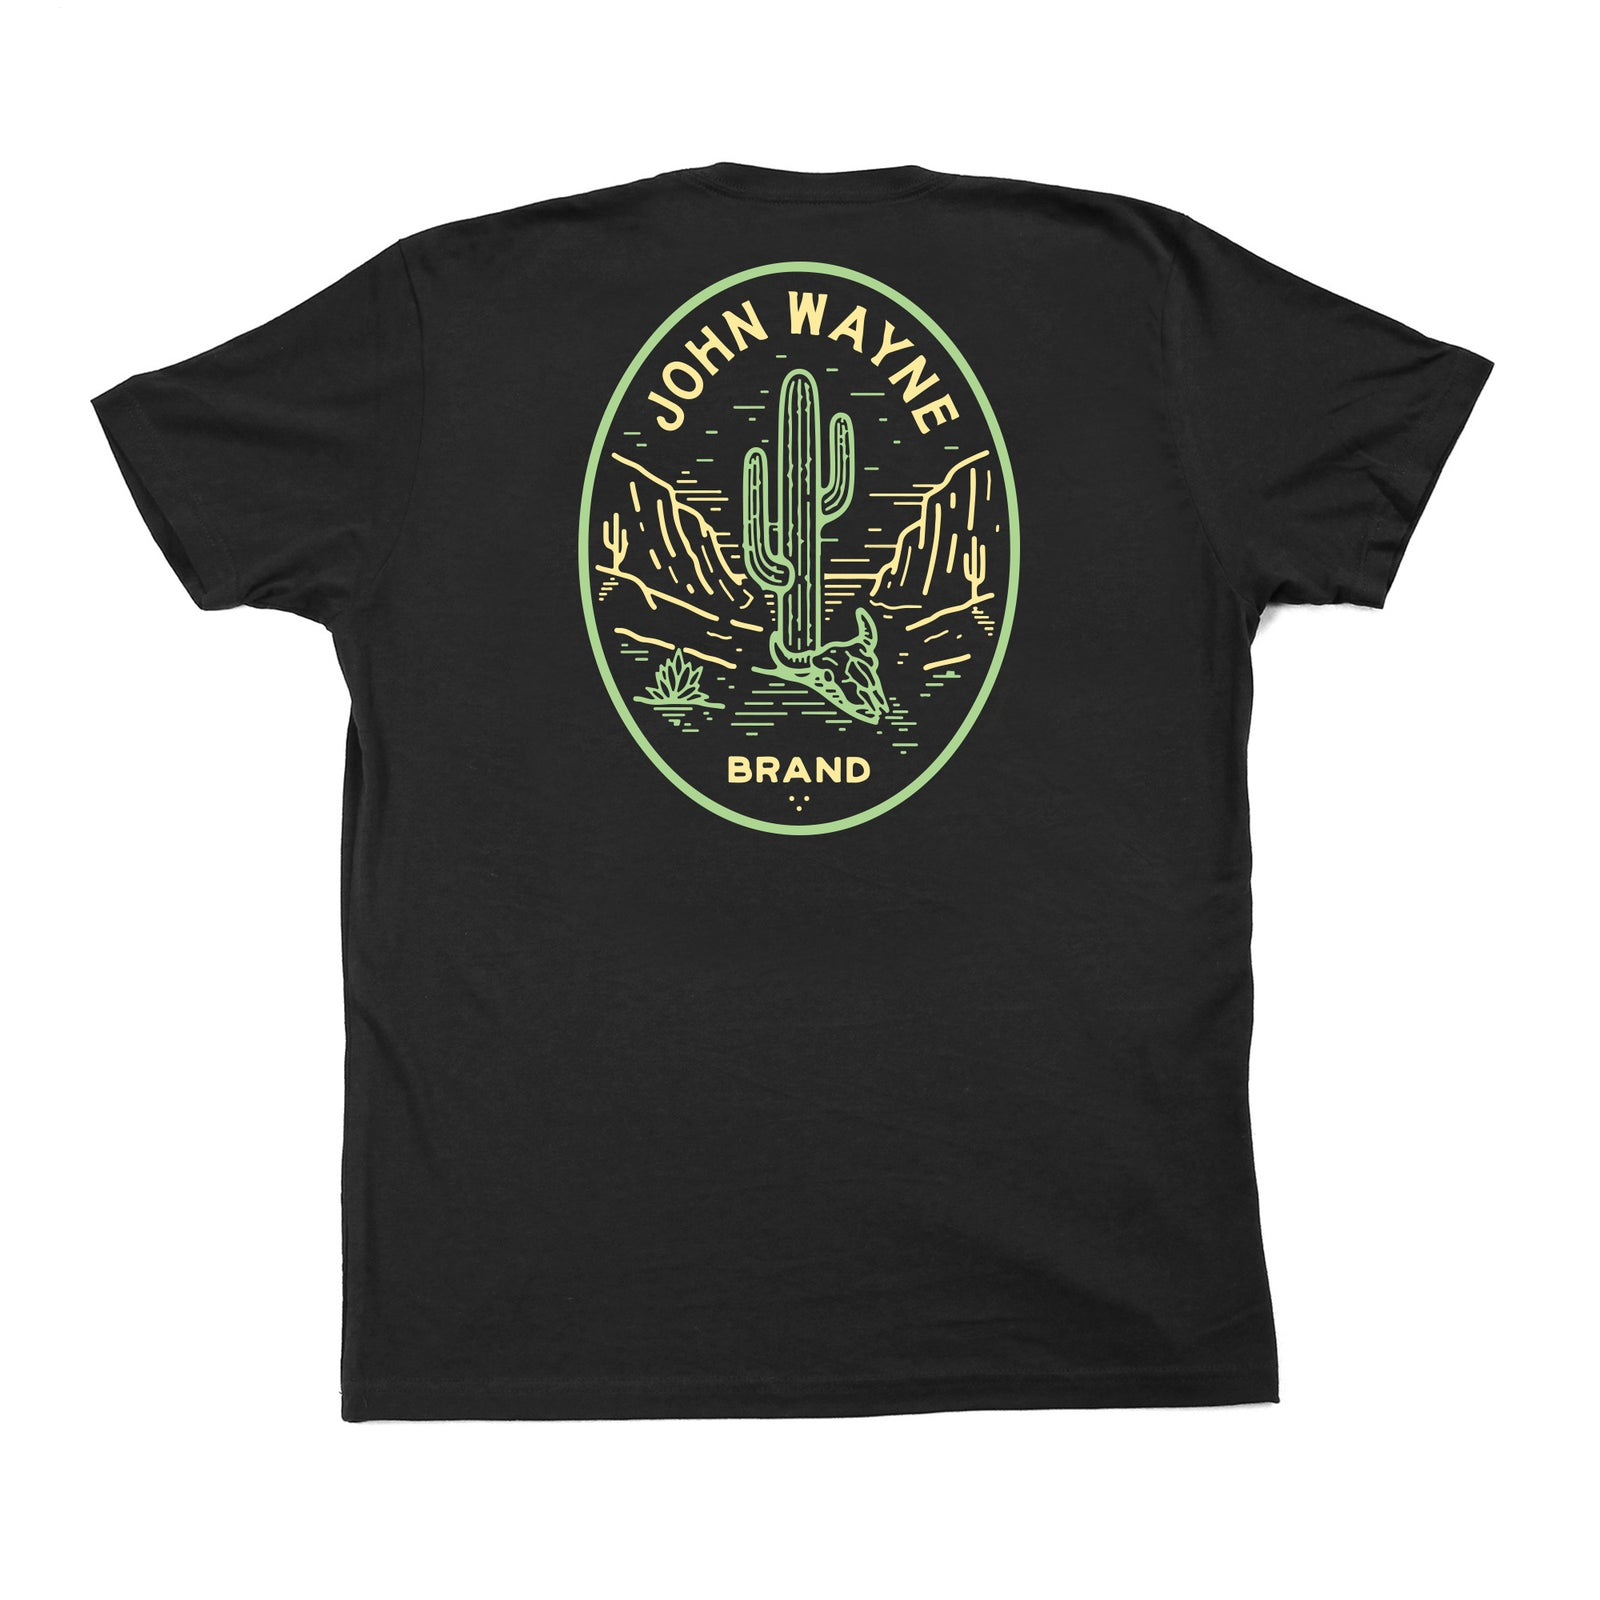 Official John Wayne Black Desert Tee